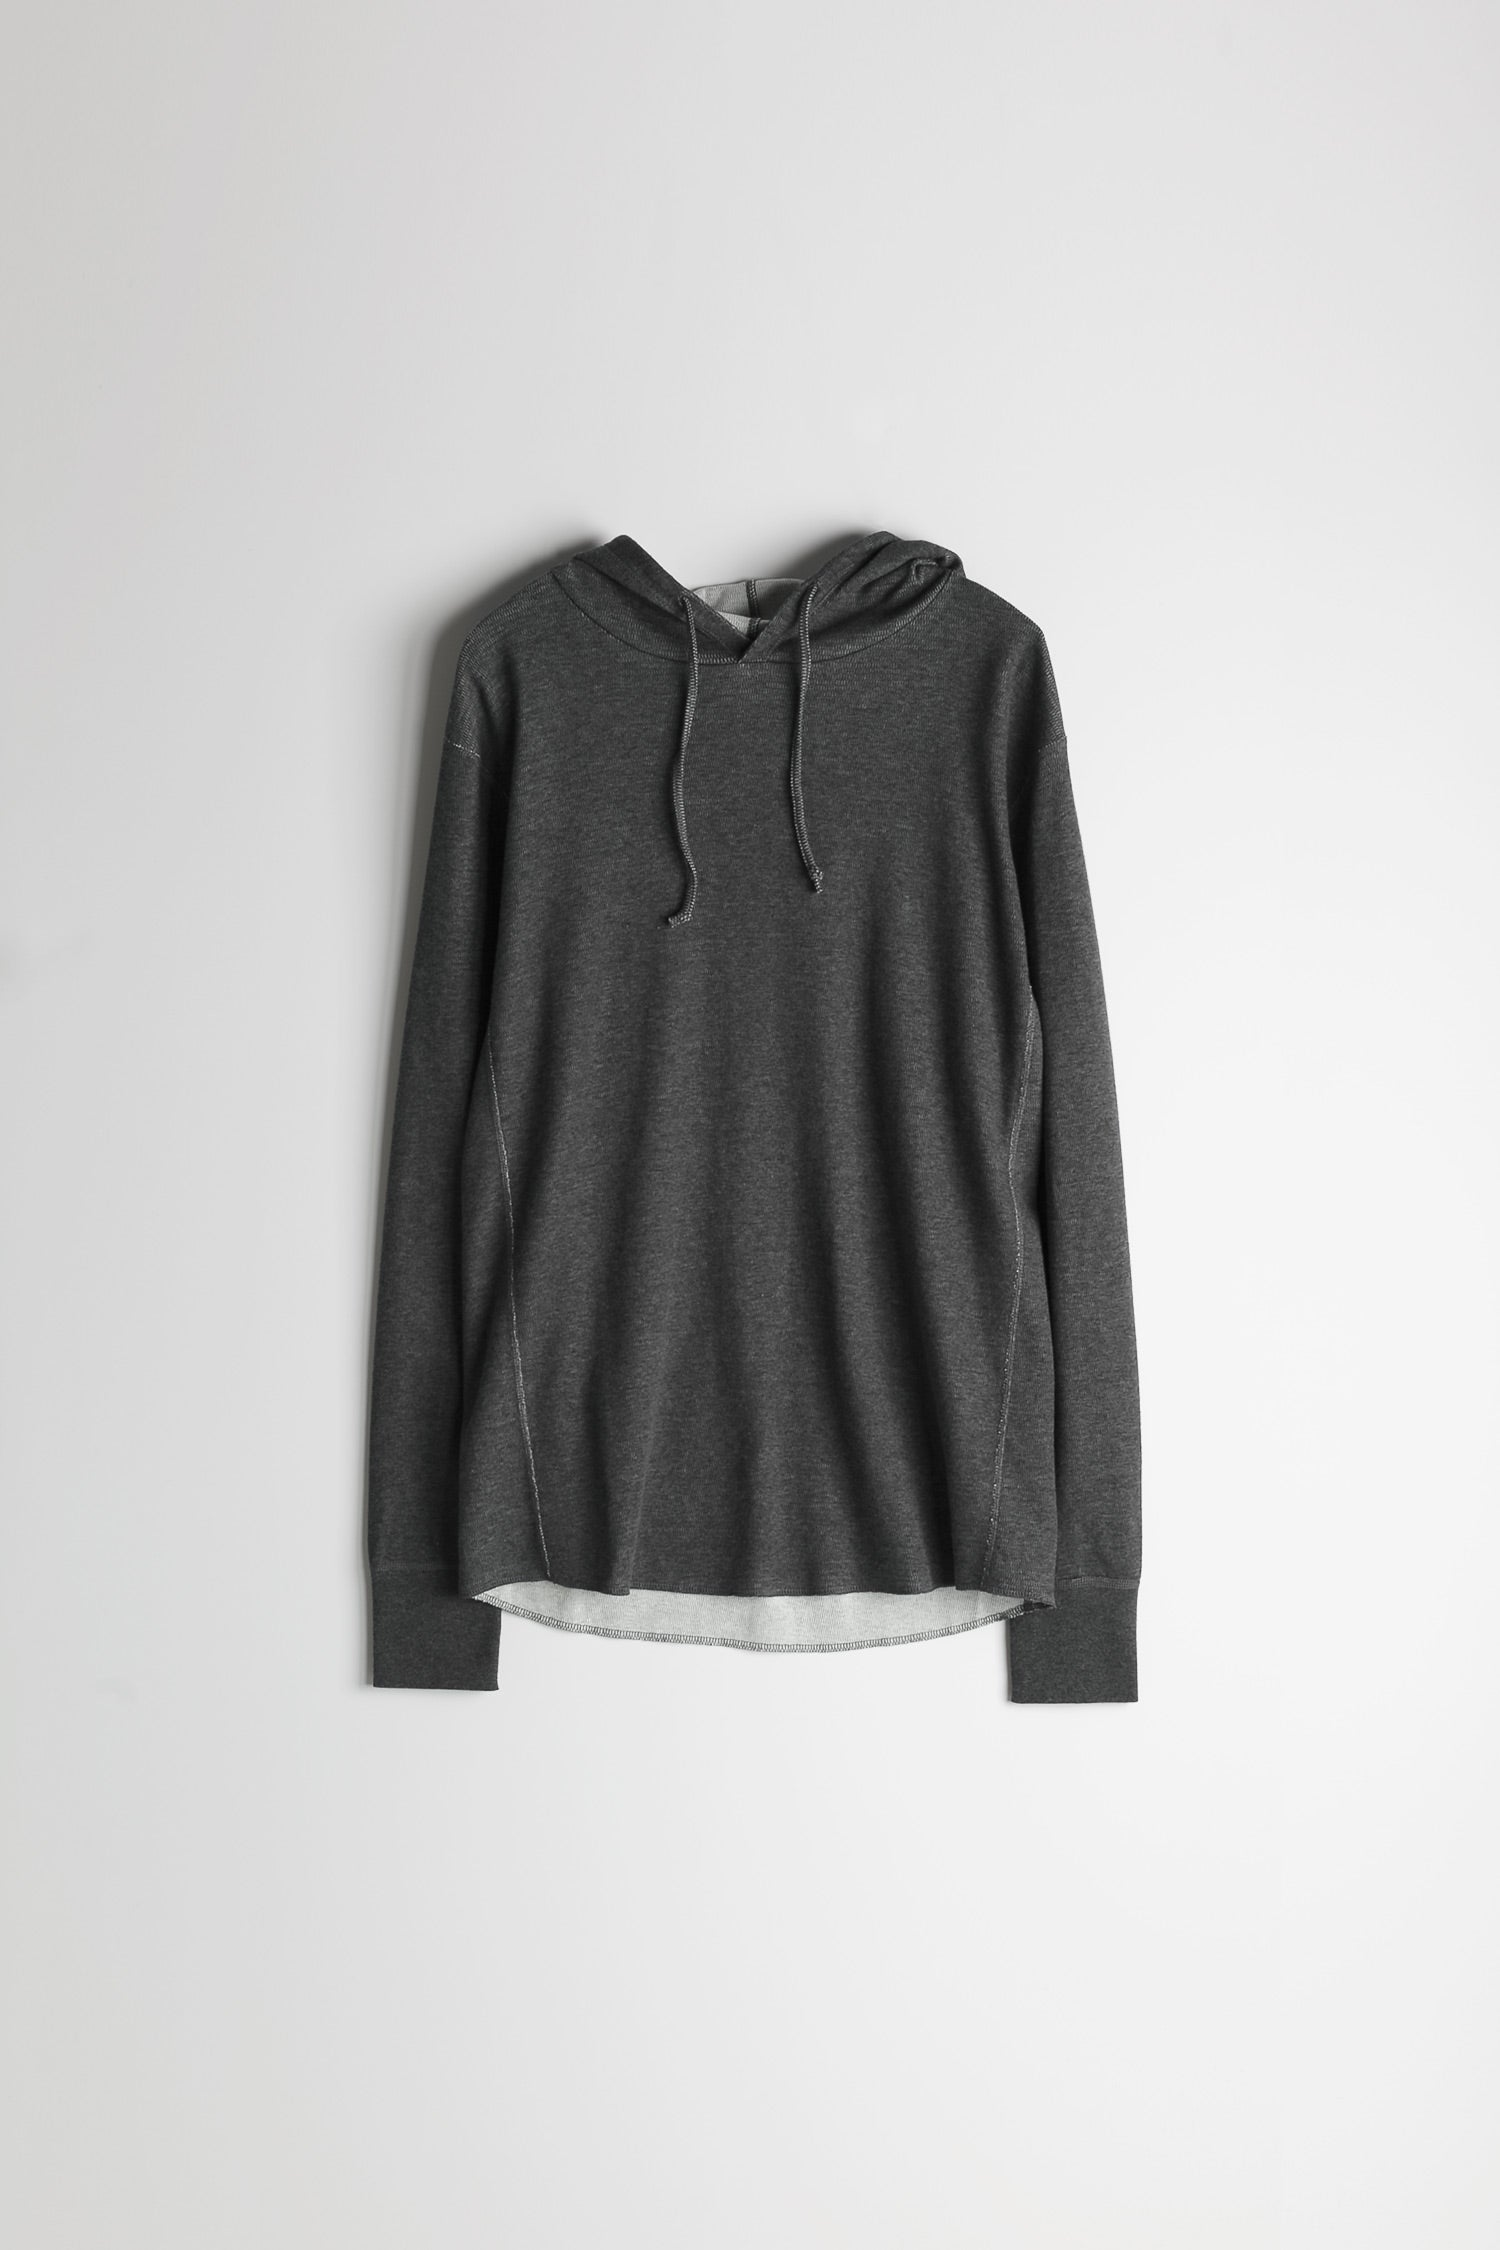 Mesh Thermal Pullover Hoodie in Melange Charcoal